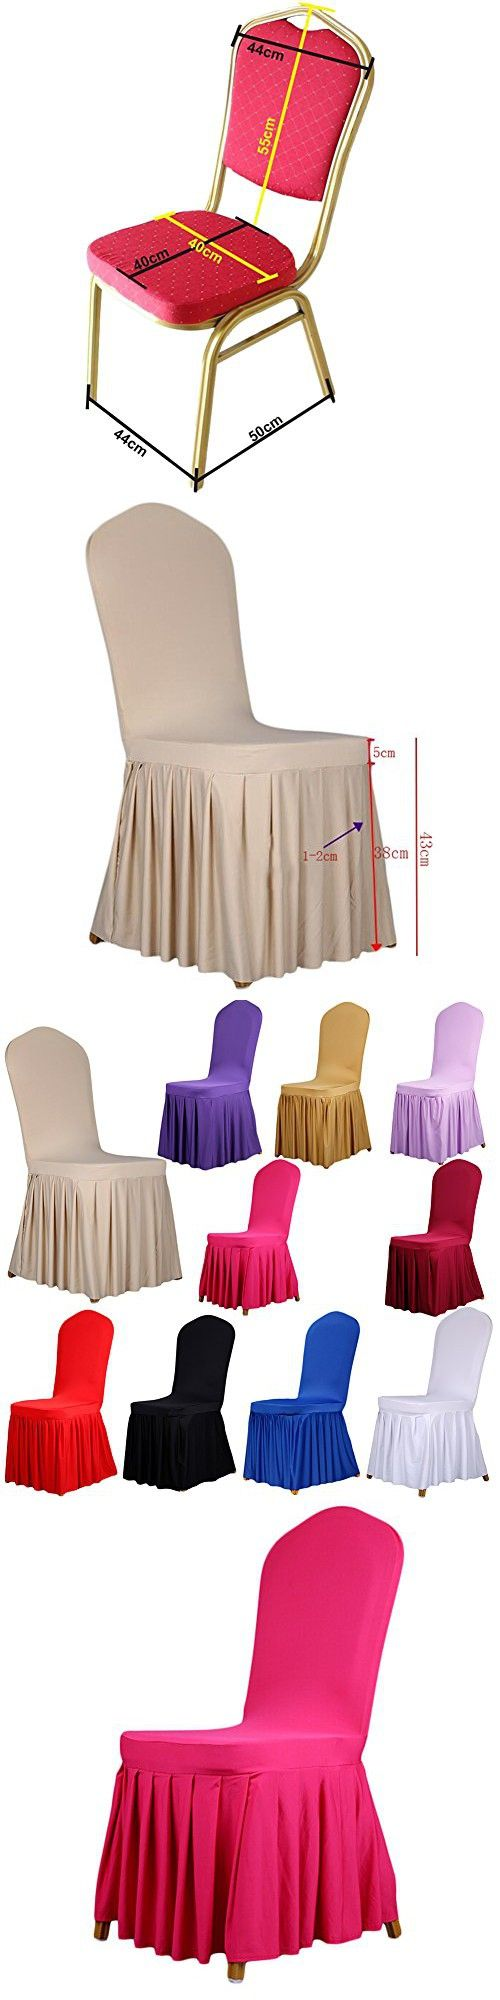 Best 25+ Dining chair seat covers ideas on Pinterest | Chair seat ...